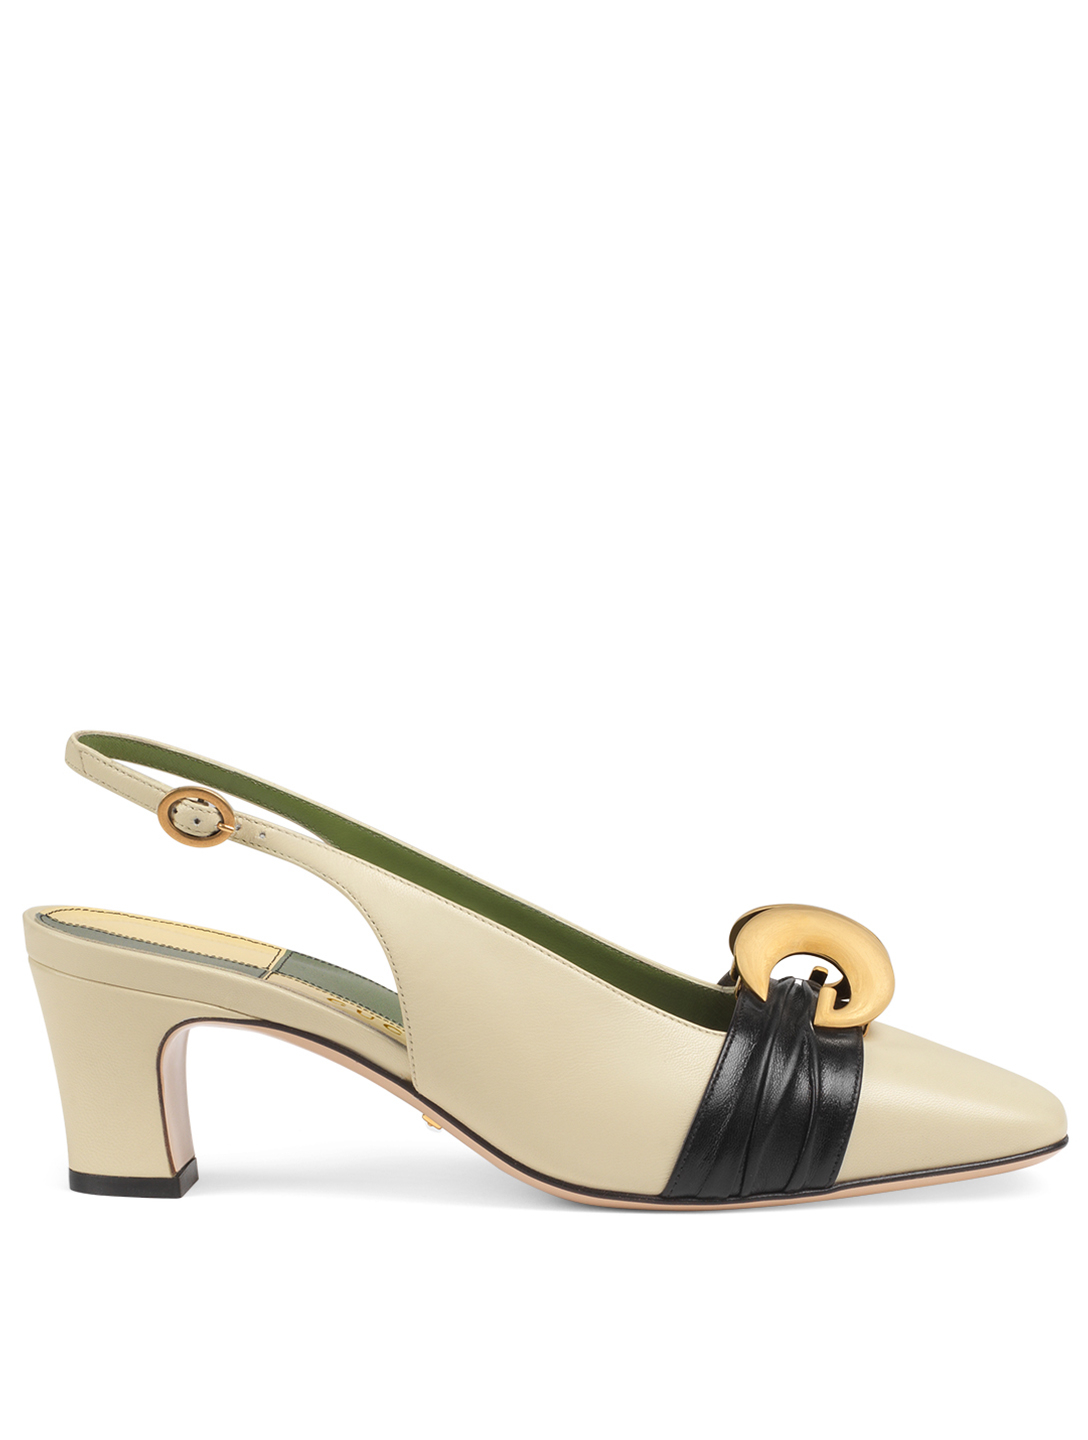 GUCCI Leather Slingback Pumps With Half Moon GG Women's Multi